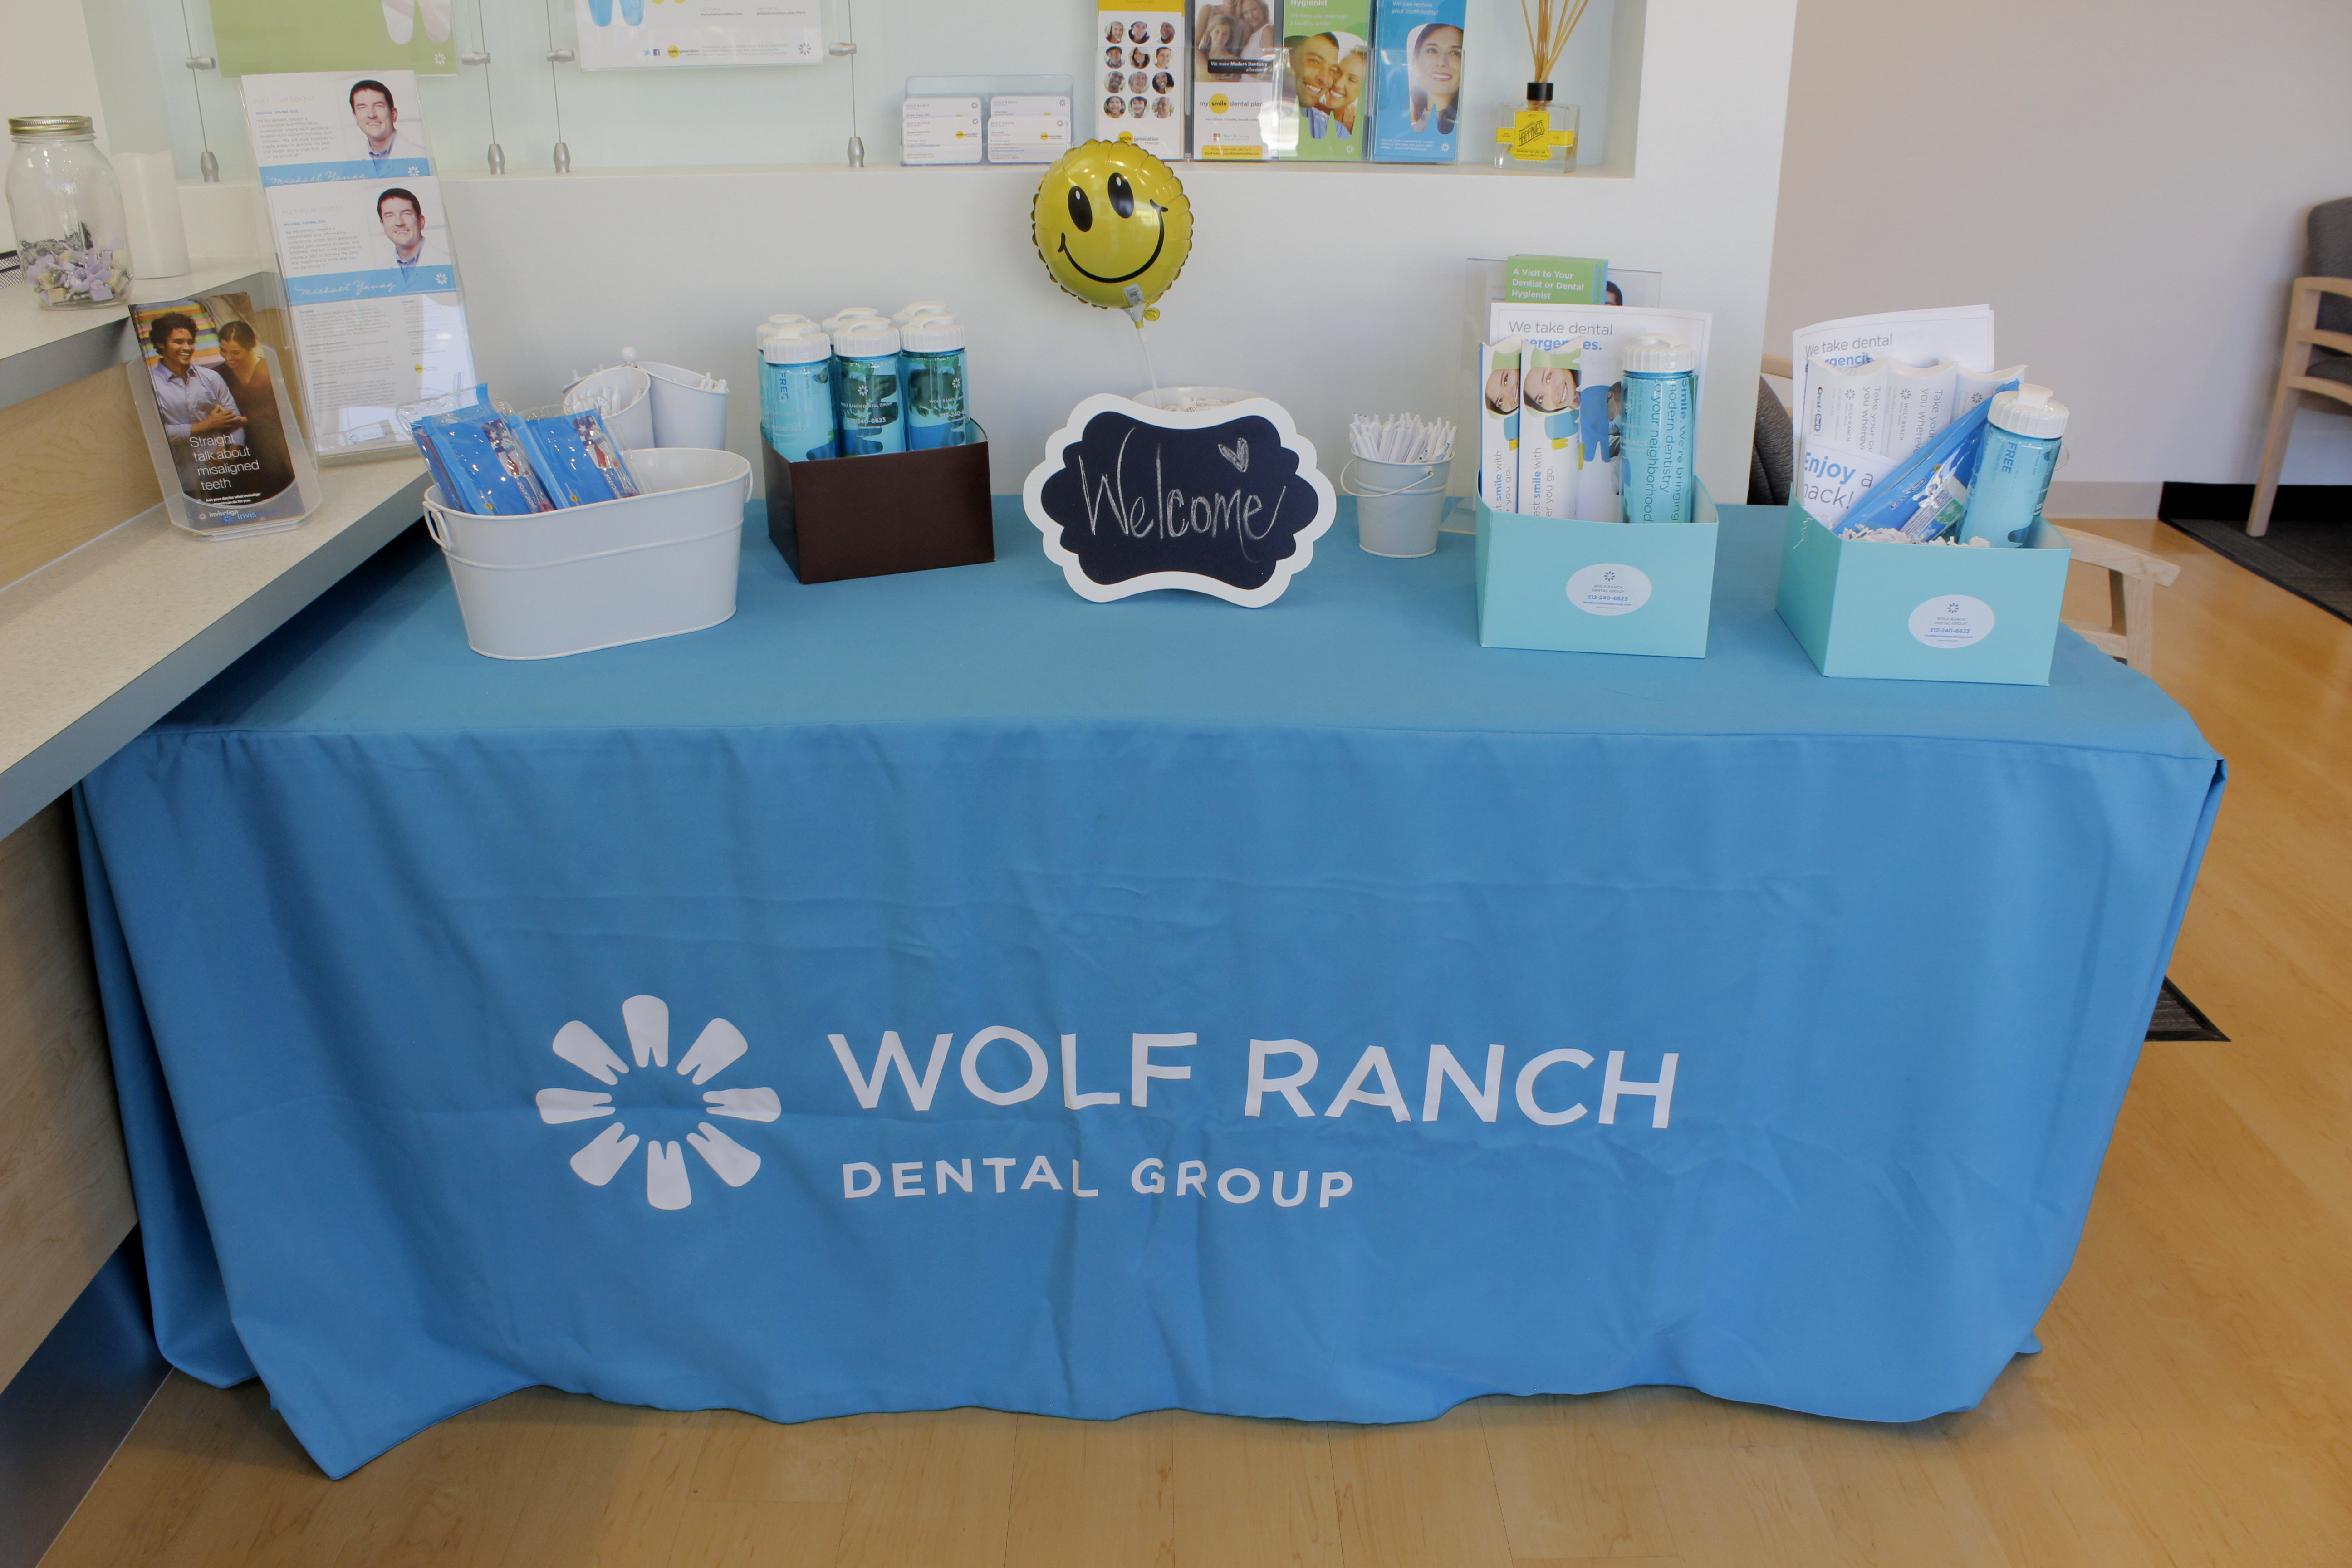 Wolf Ranch Dental Group image 3